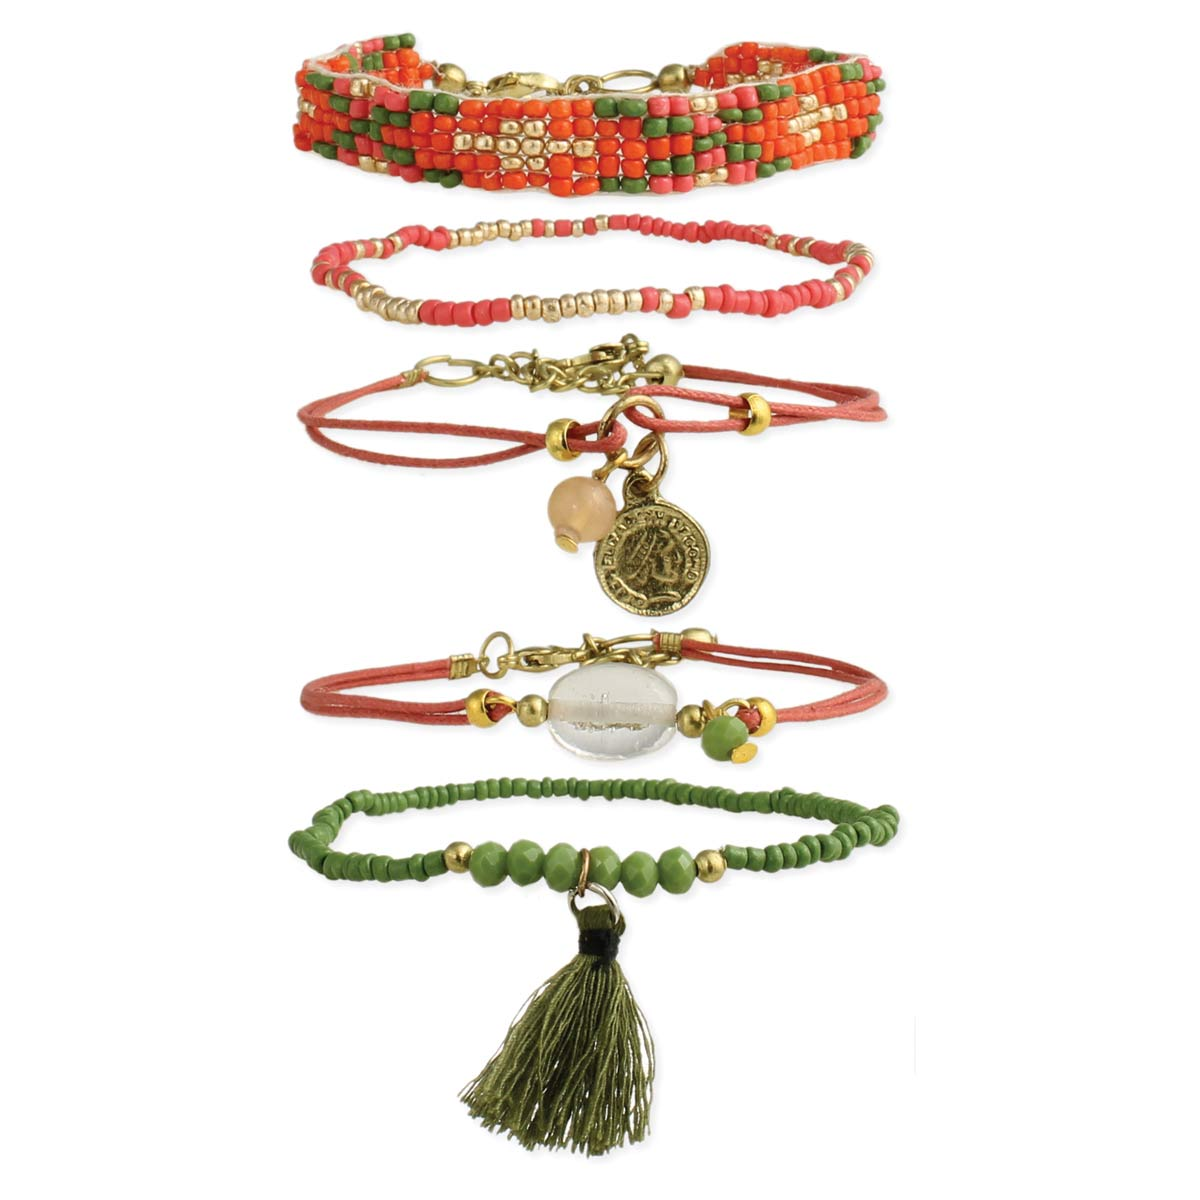 Orange & Olive Bead Bracelet Set